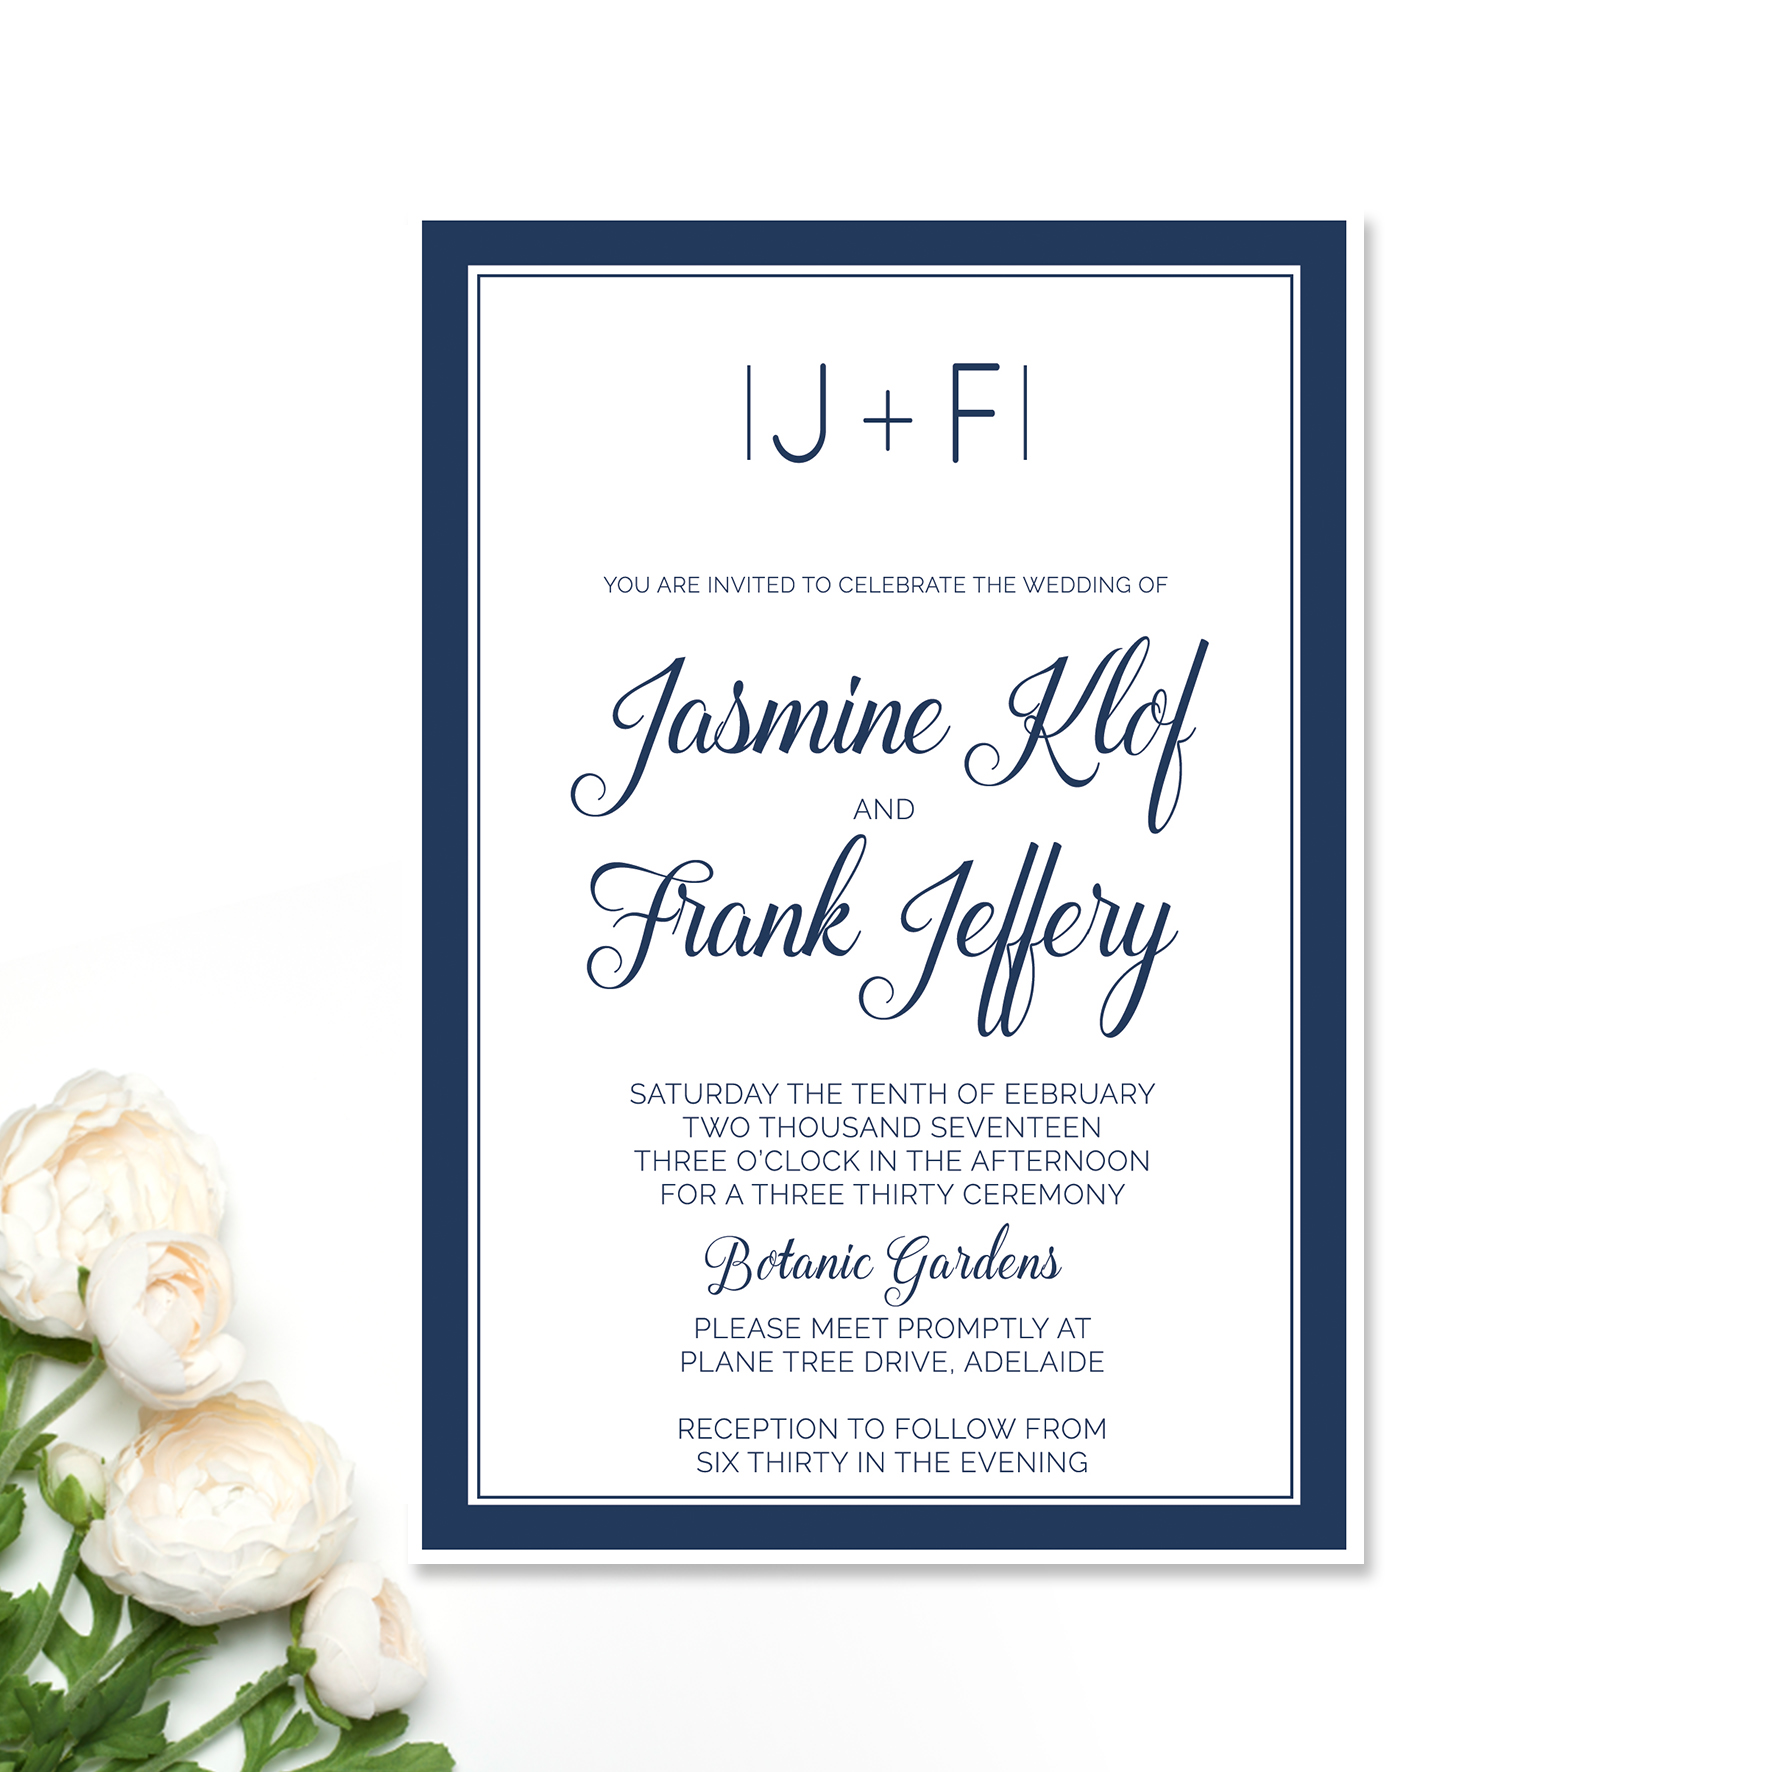 Jasmine + Frank Wedding Invitation